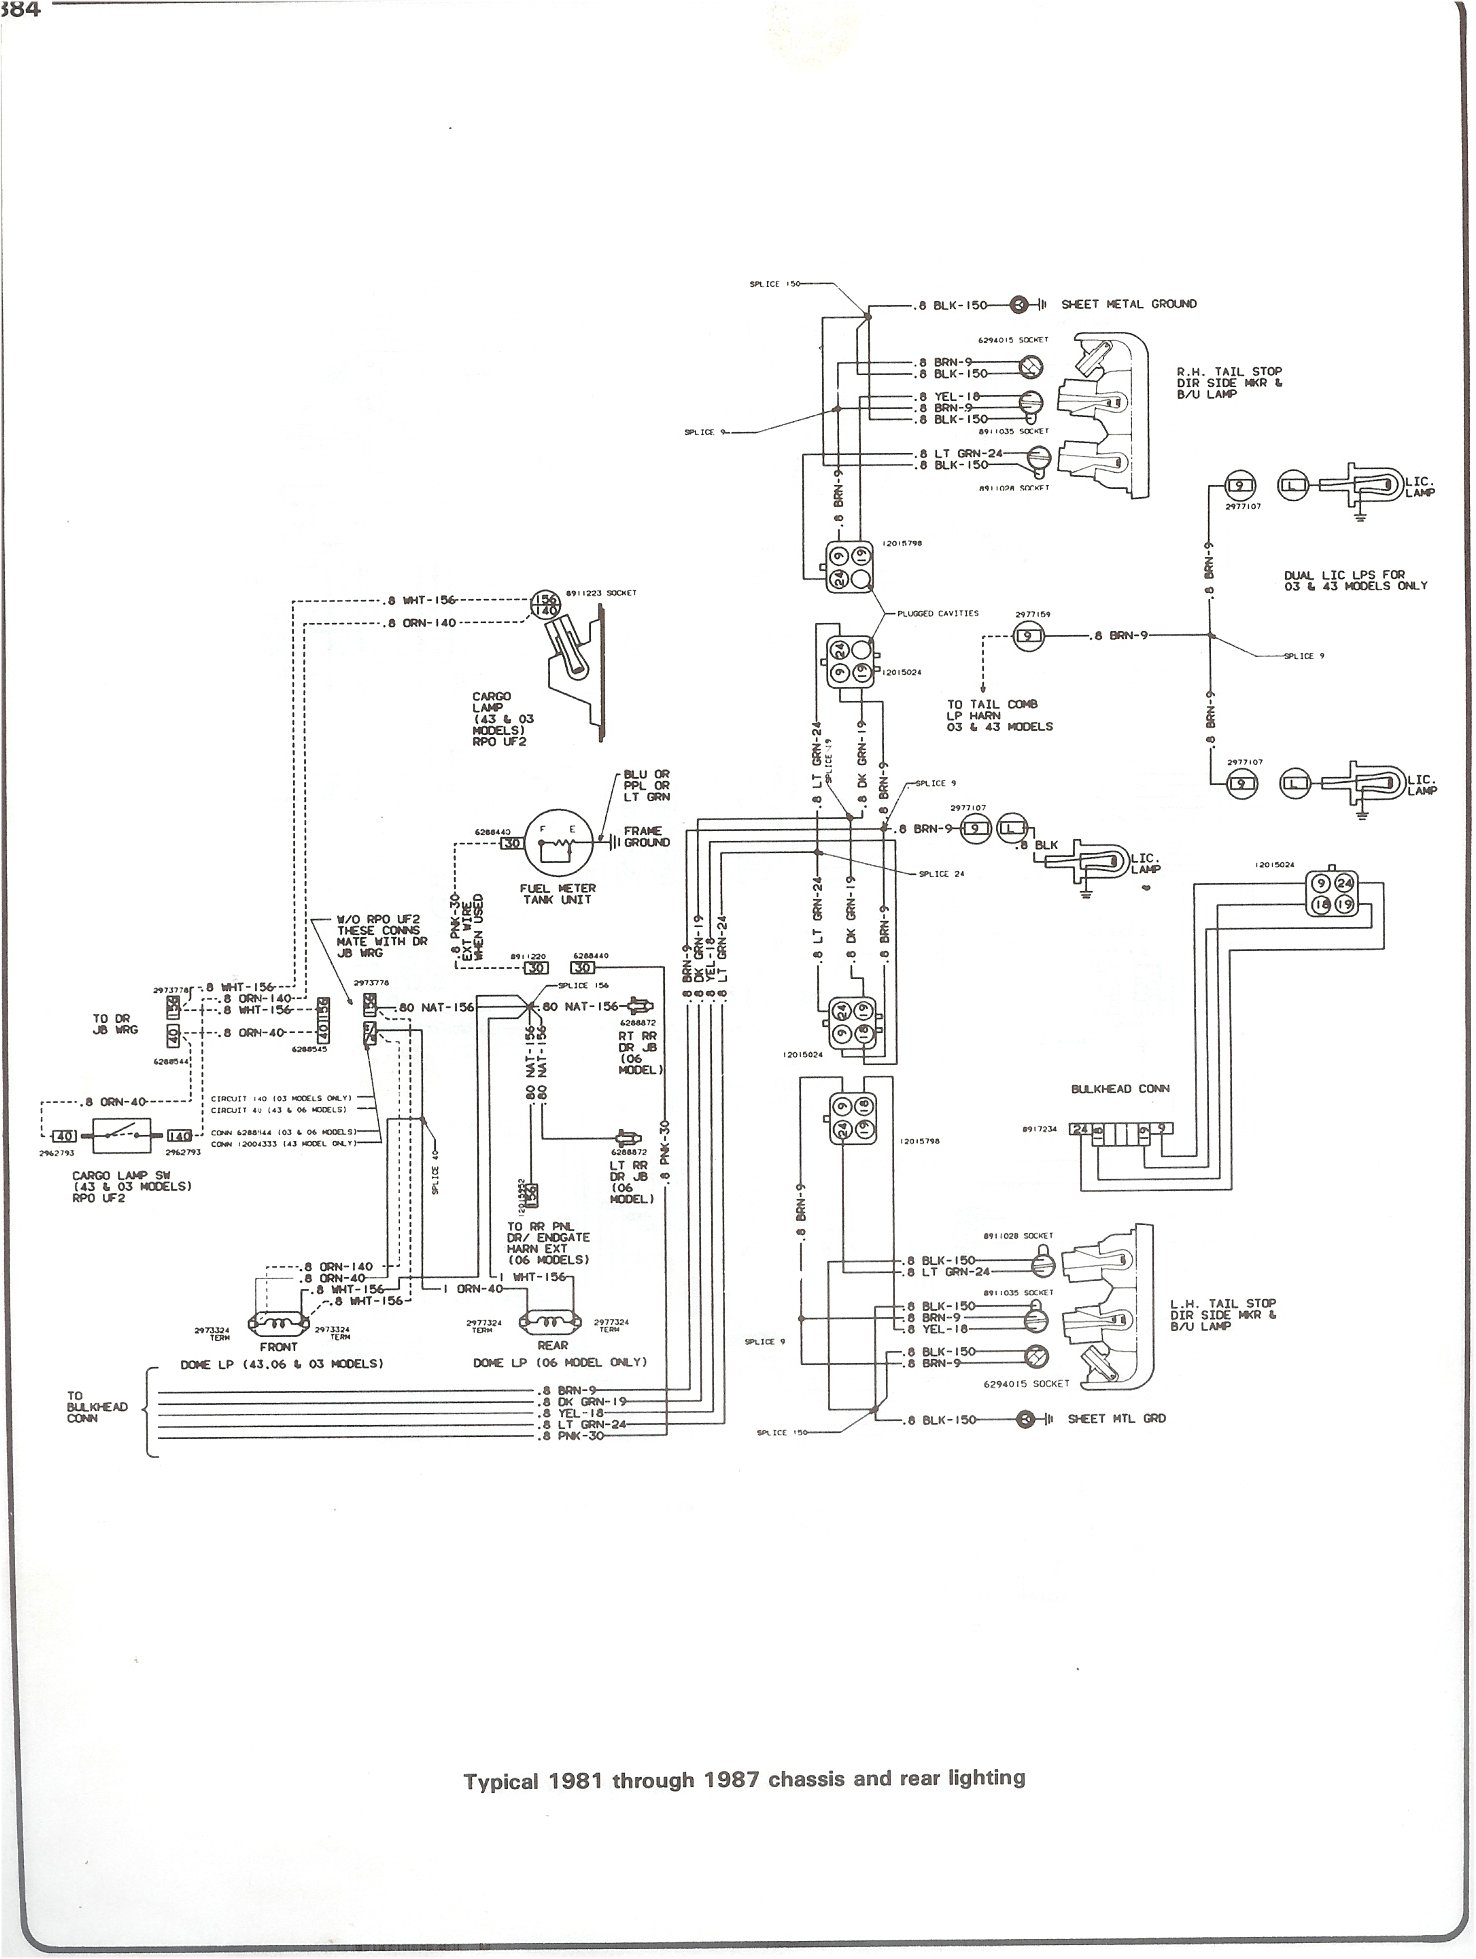 Radio Wiring Diagram For 1998 Jeep Simple Guide About Grand Cherokee Harness Chevy Silverado Drawing At Getdrawings Com Free